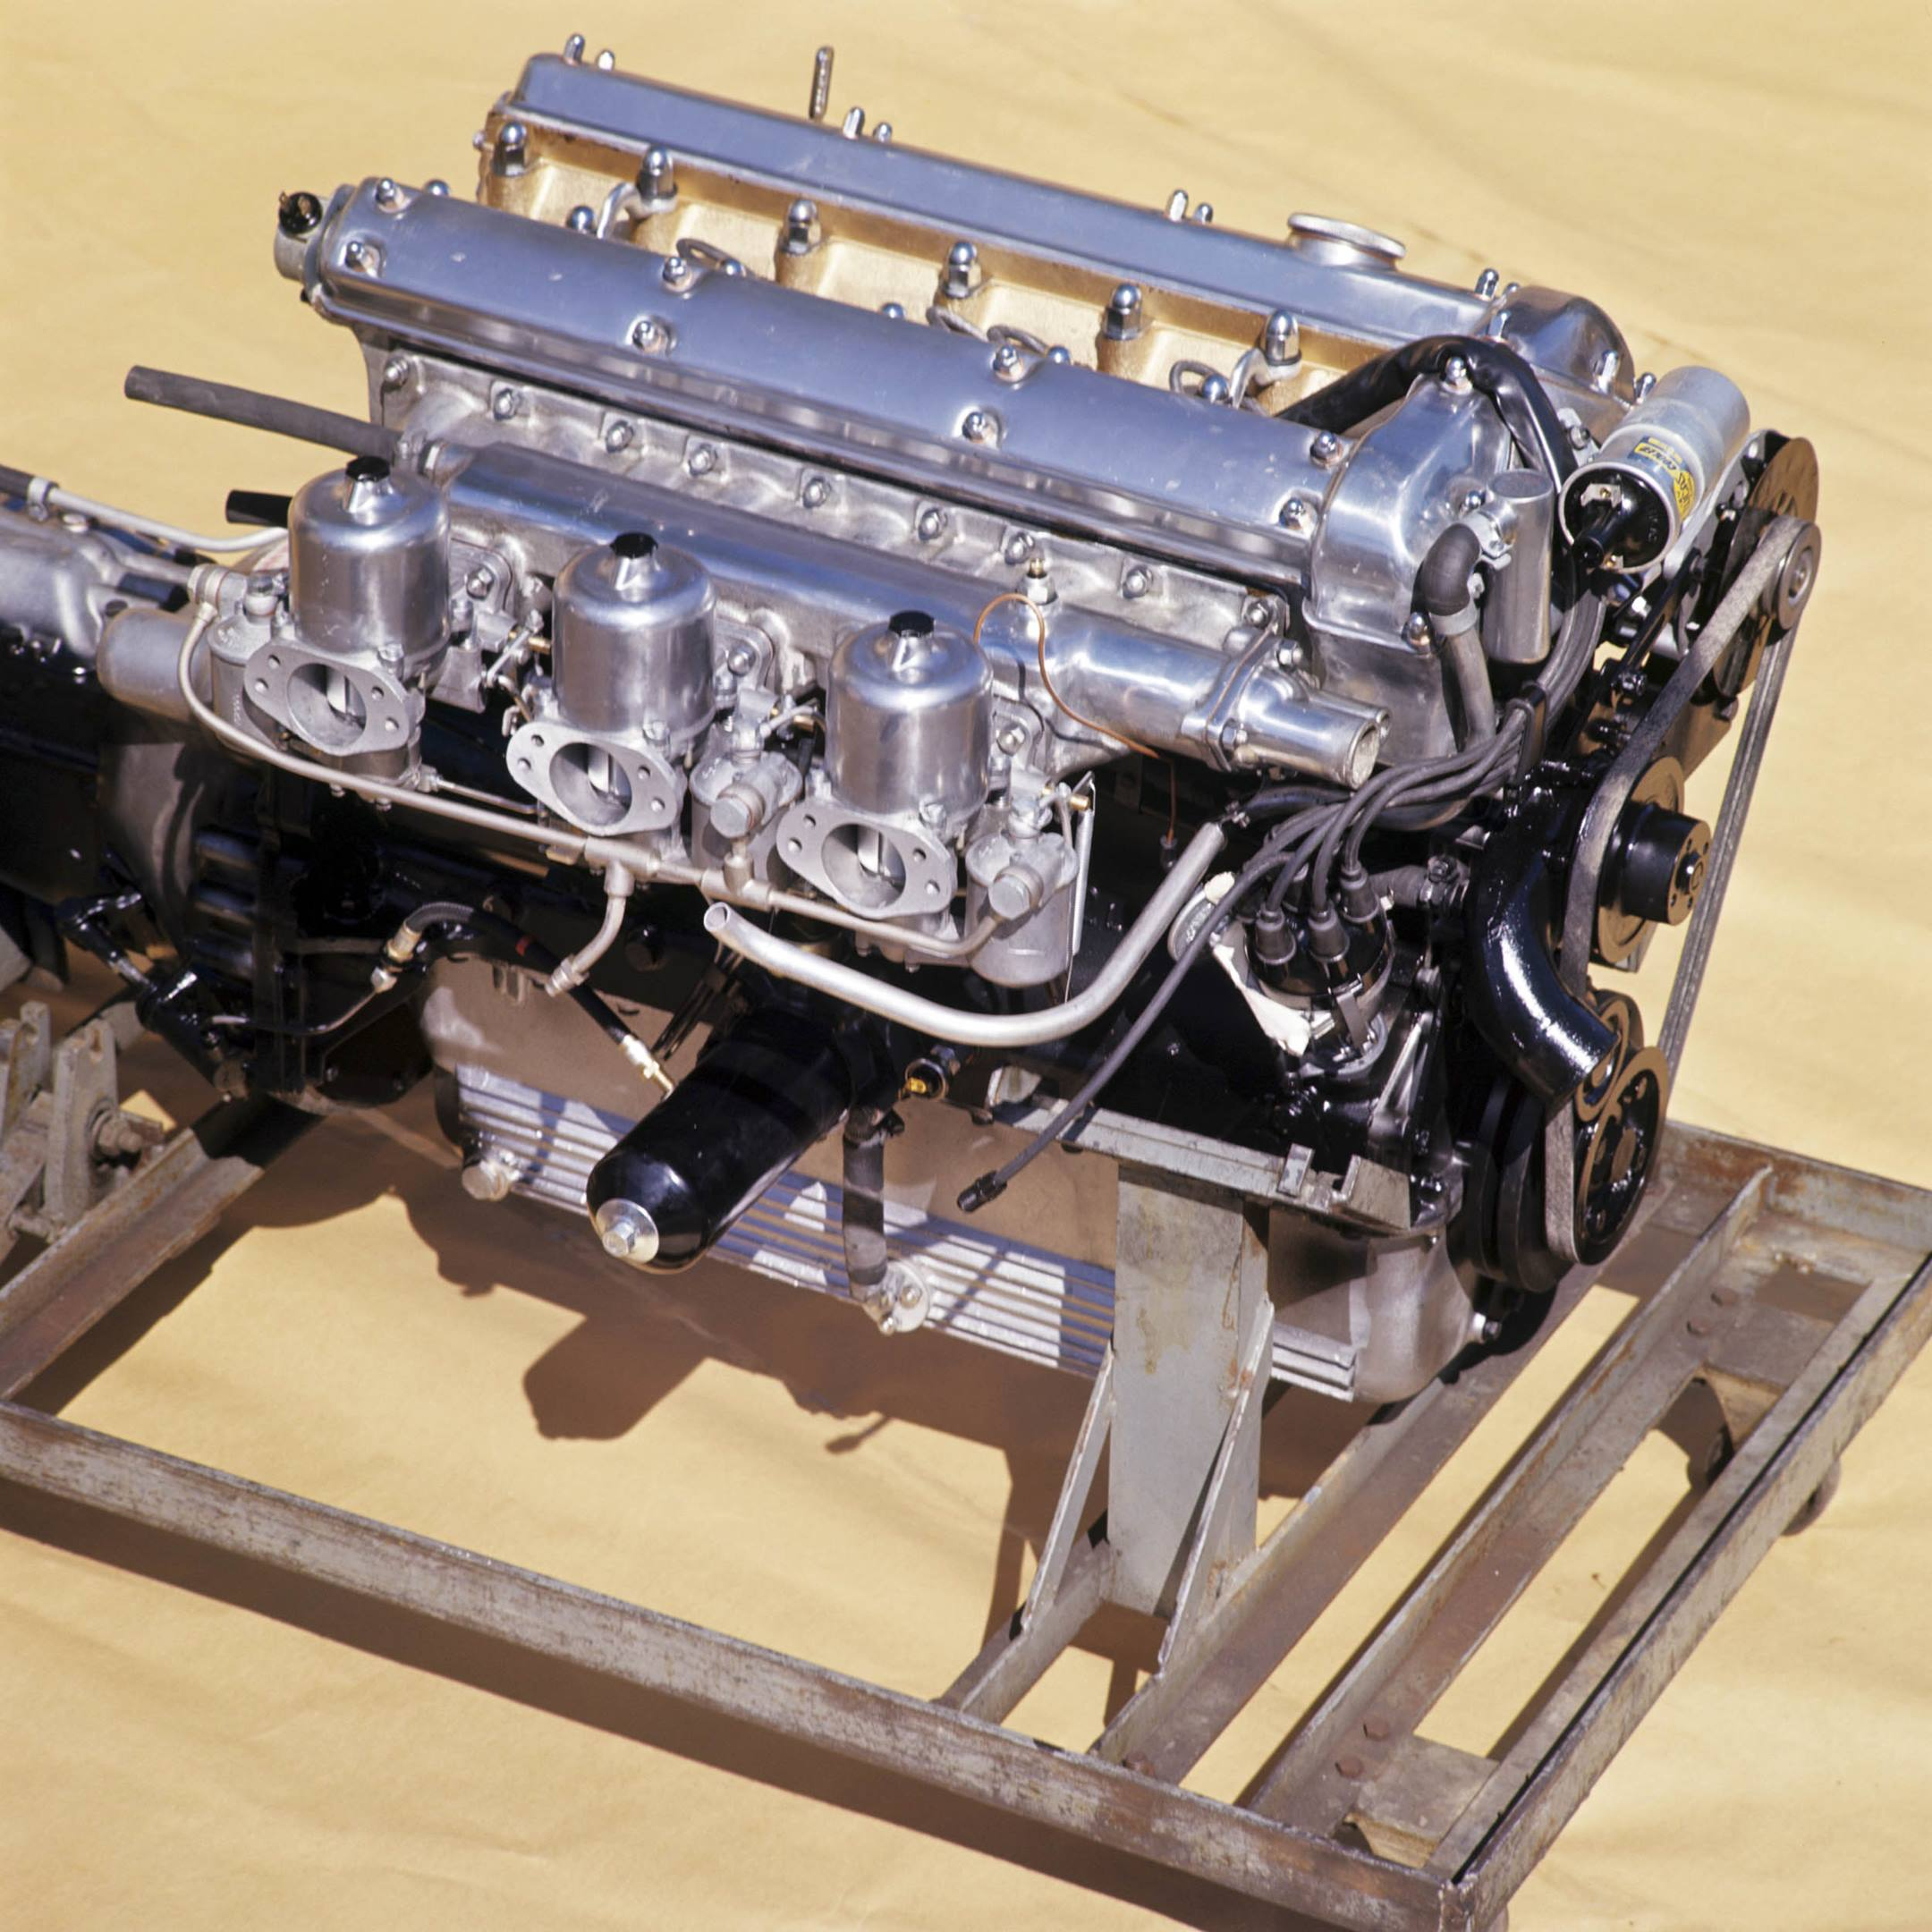 XK engine